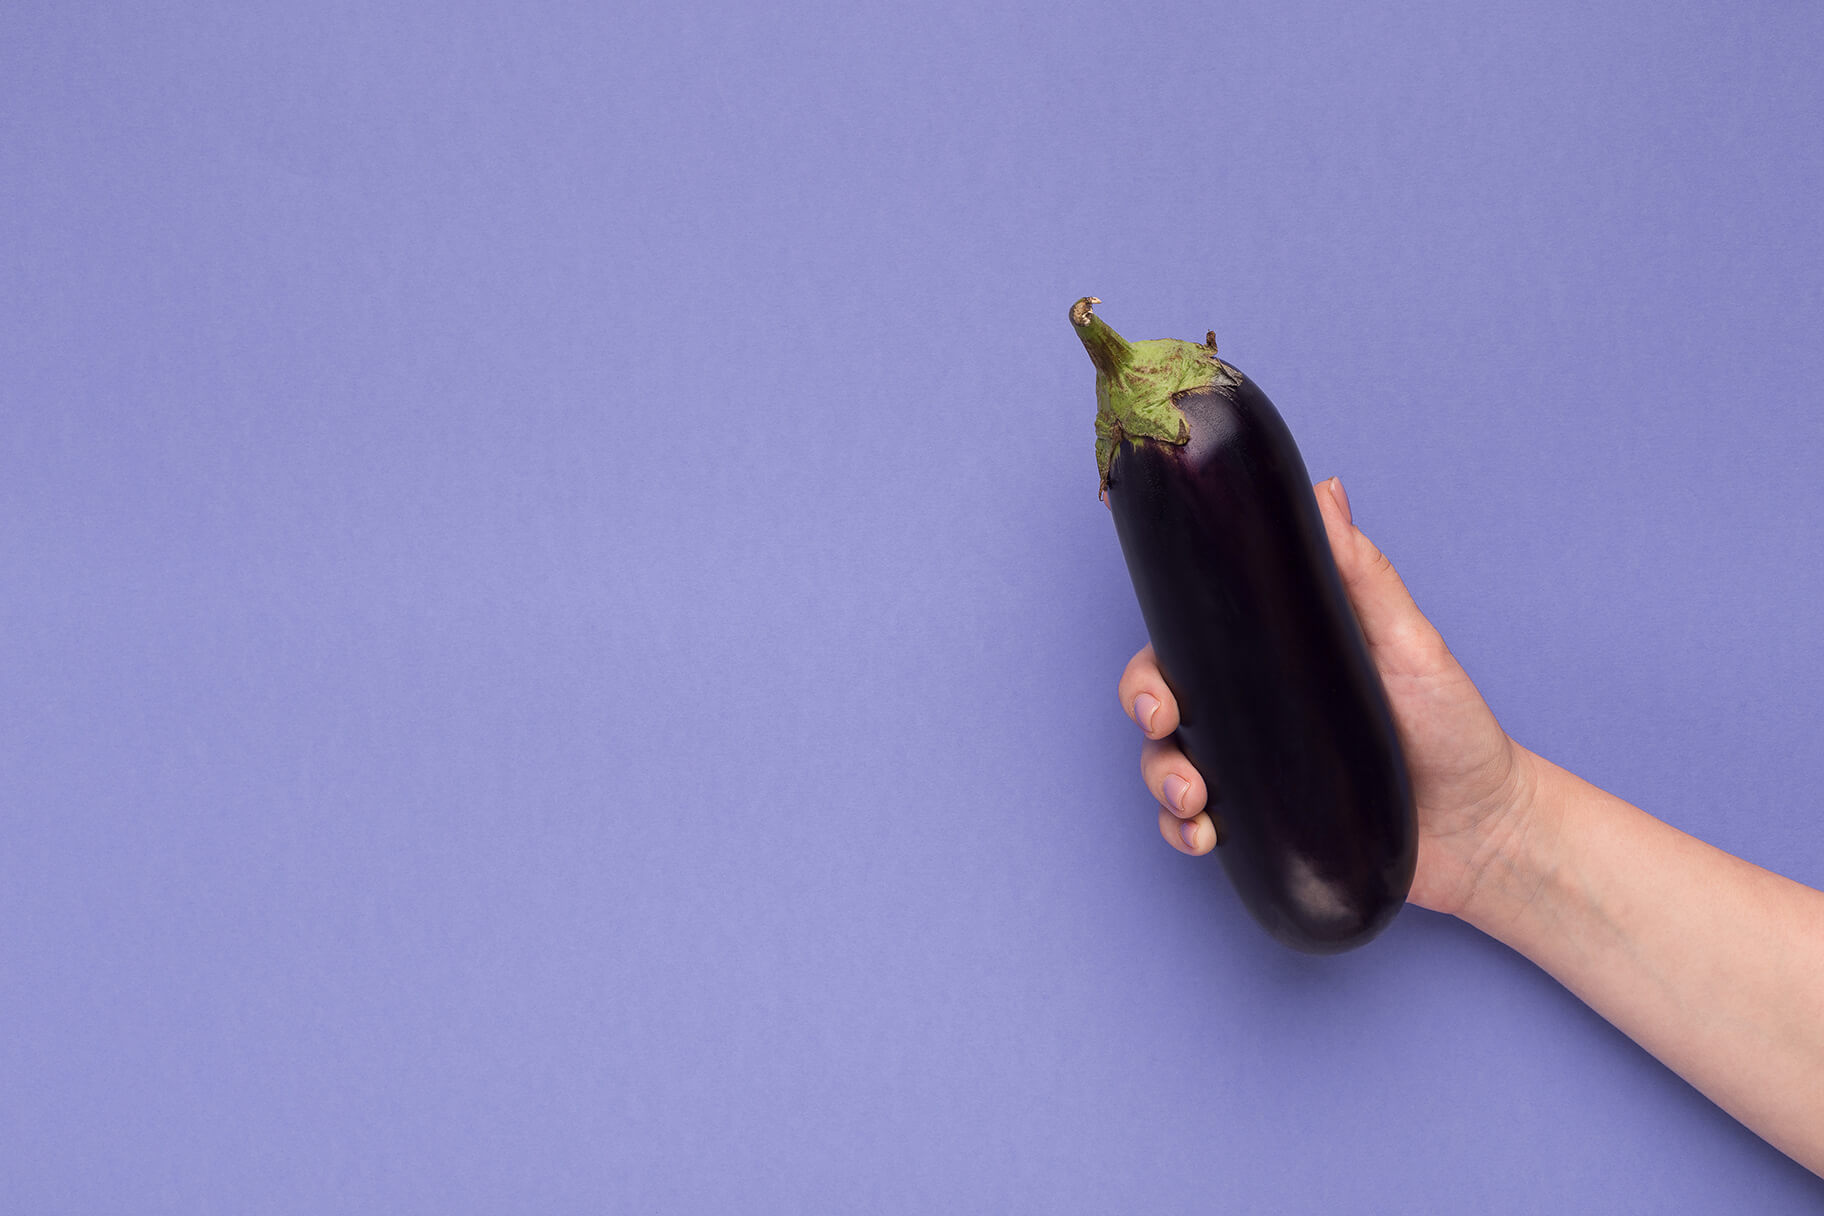 Man's hand holding up an eggplant against a purple background